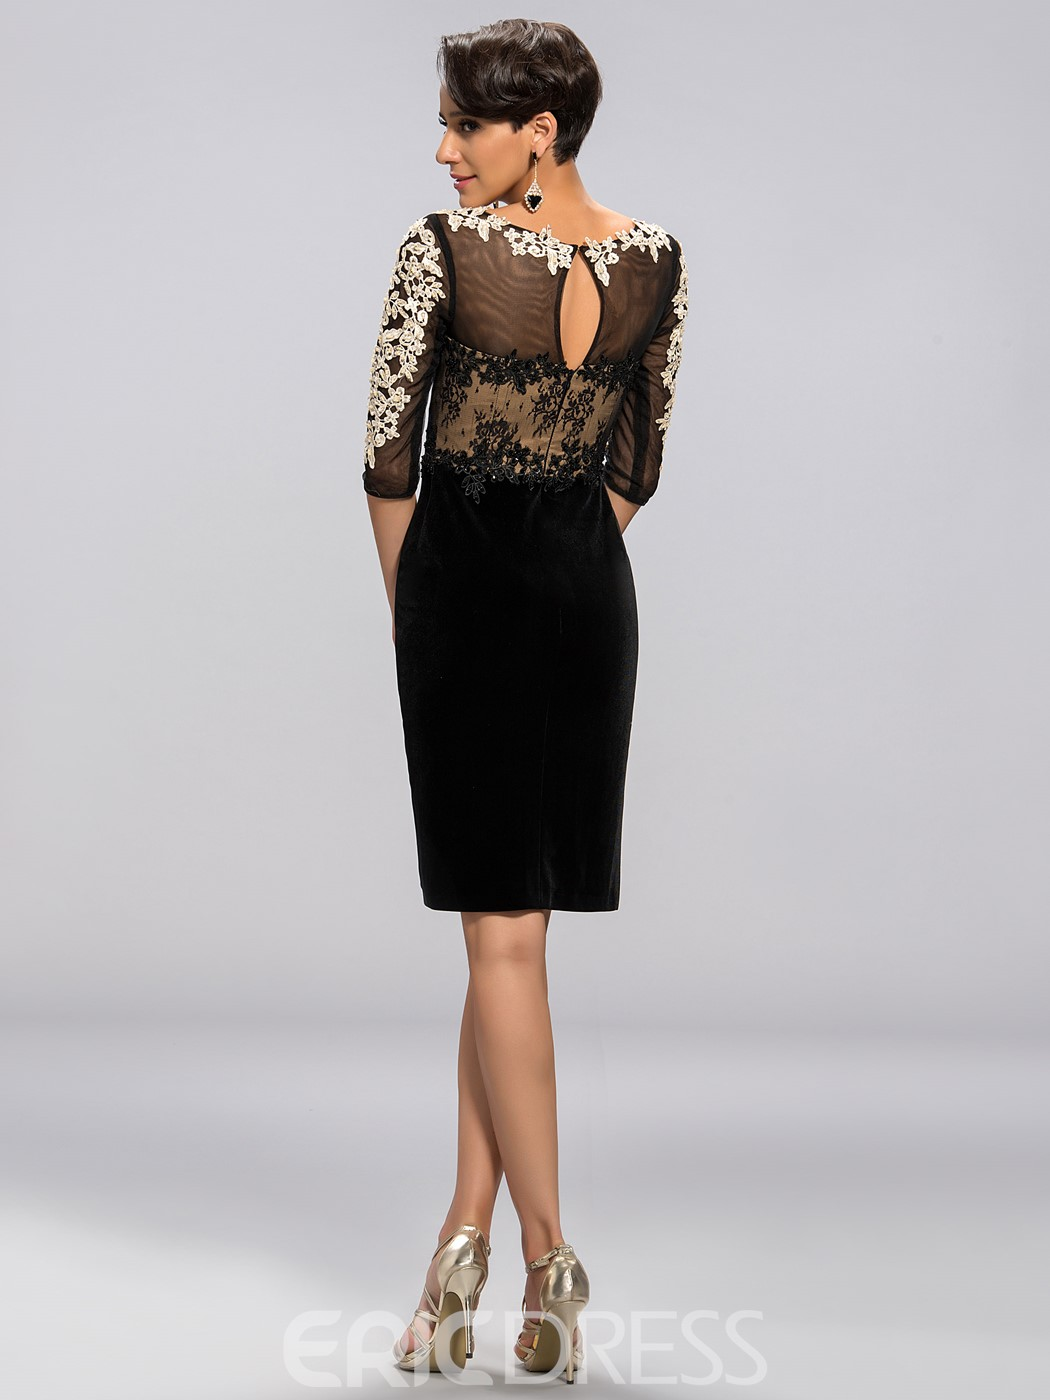 Classy Sheath Scoop Half-Sleeves Applique Knee-Length Mother Dress